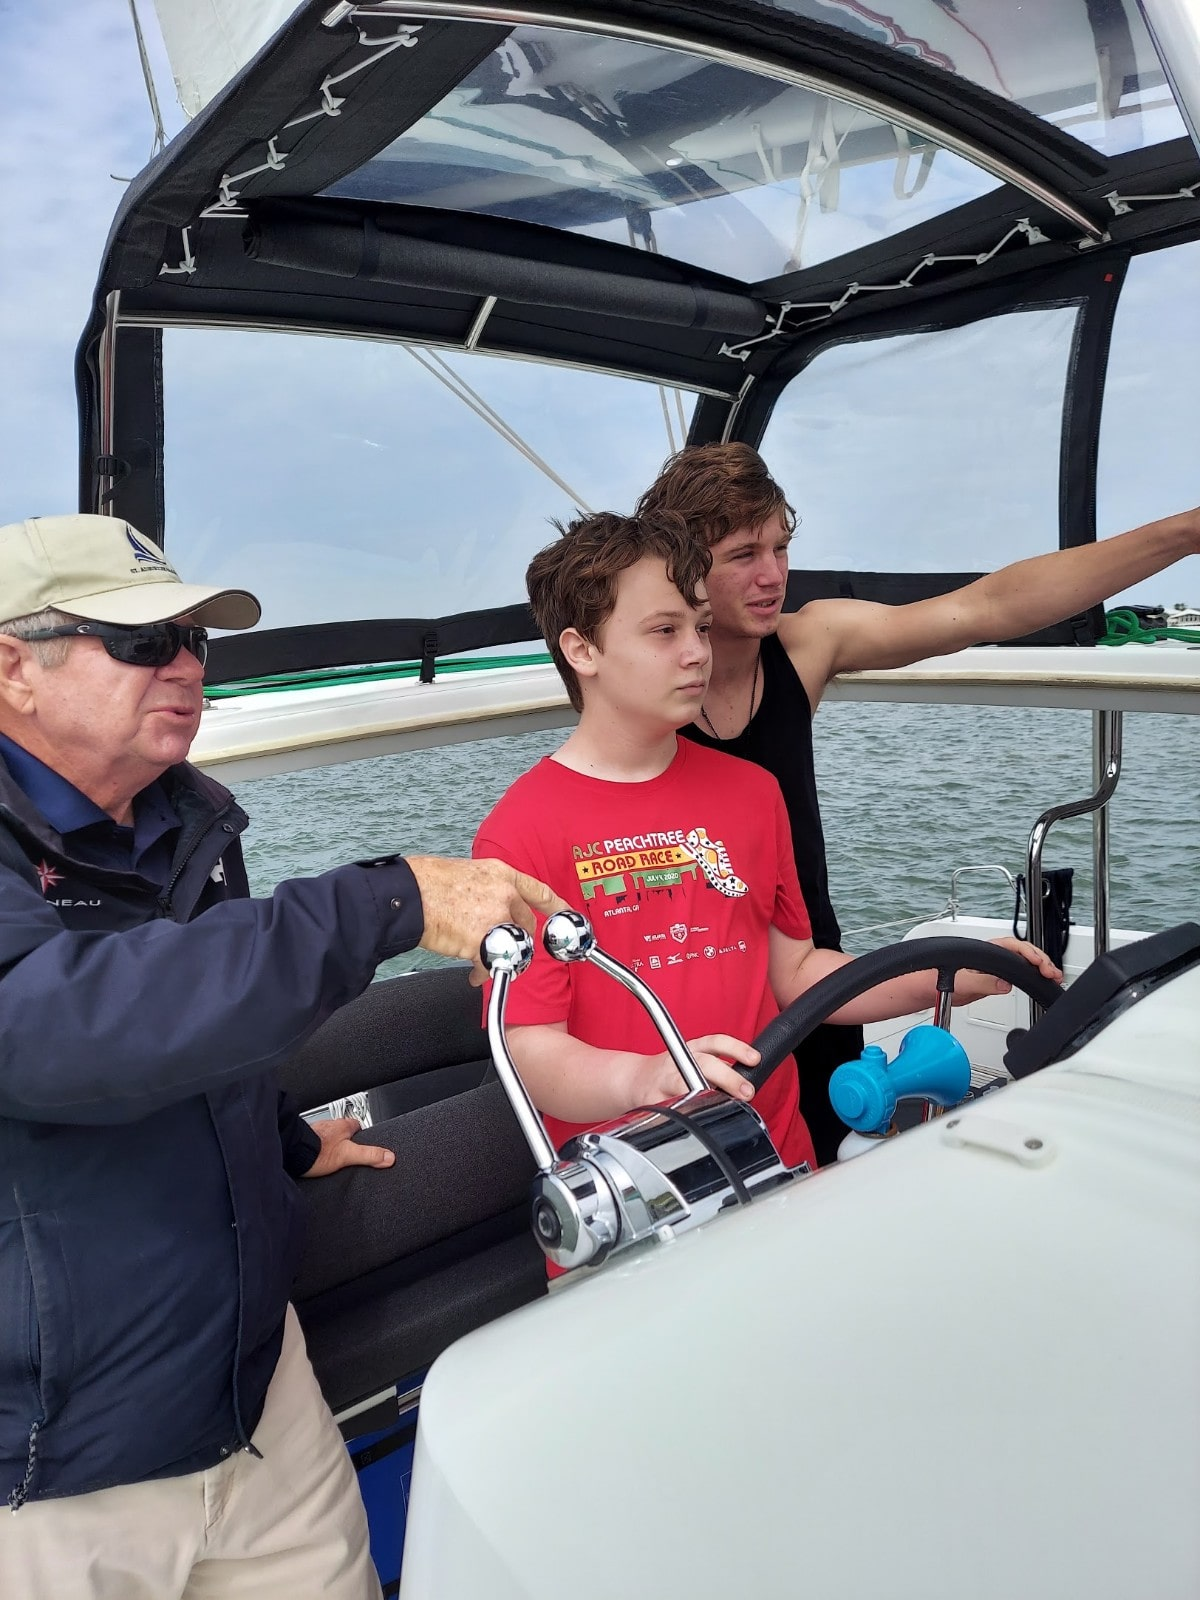 Kids can have a turn steering the boat during a St. Augustine Sailing charter.